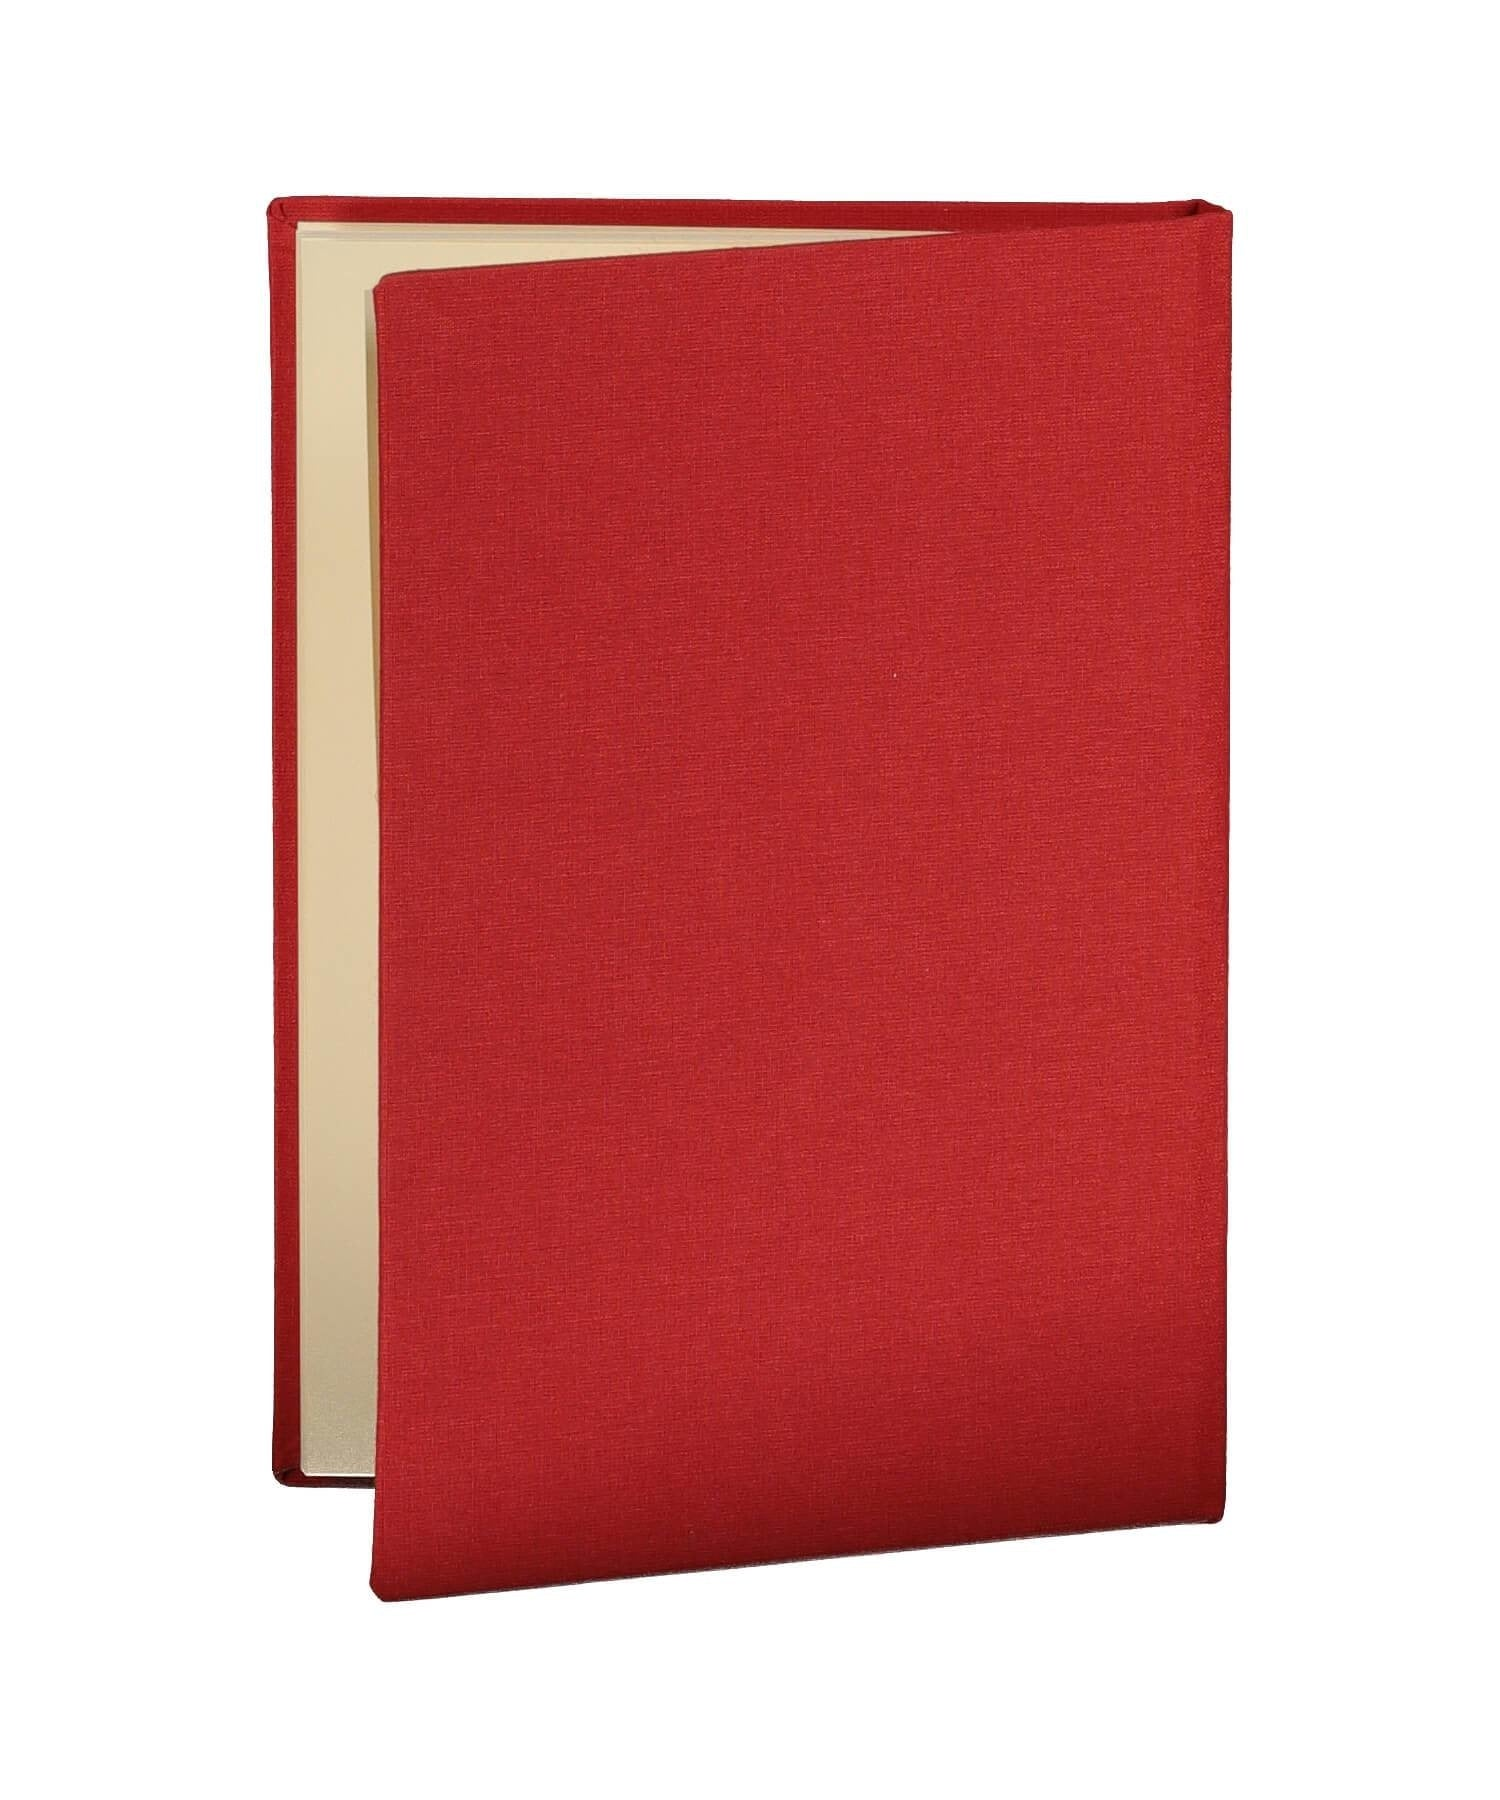 Dara Knot Notebook - Poppy - [Duffy Bookbinders] - Books & Stationery - Irish Gifts